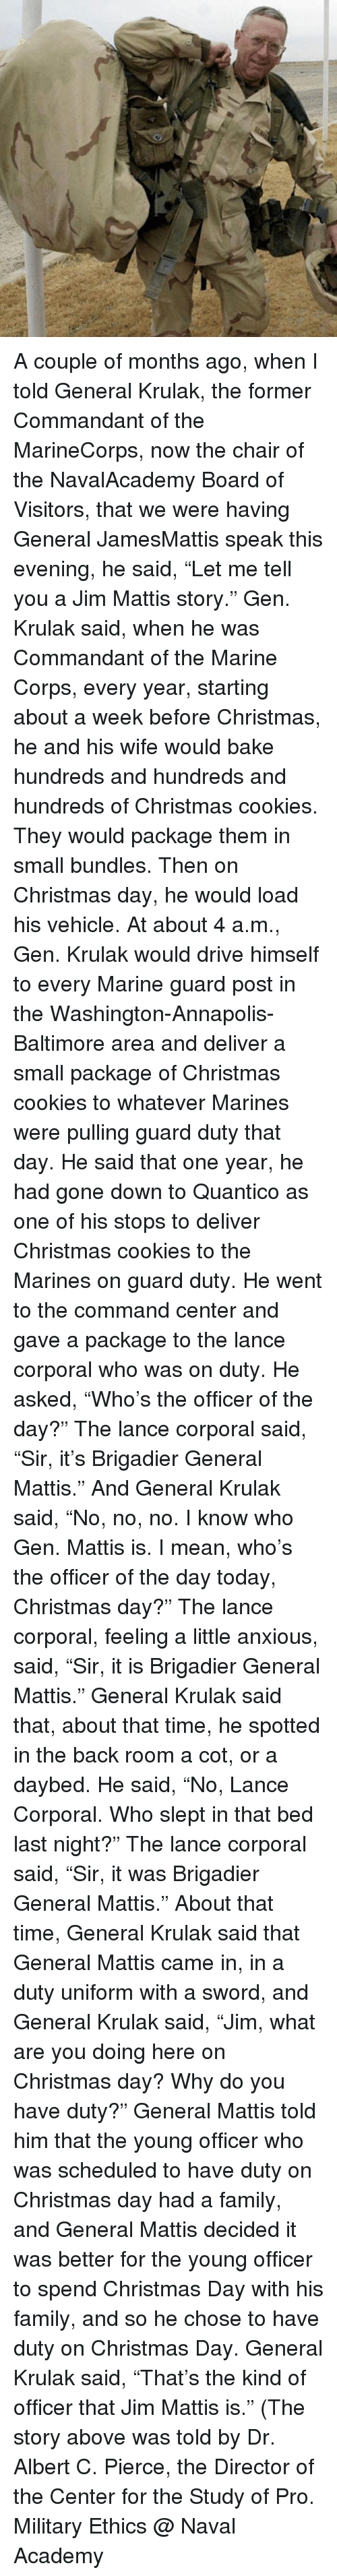 """Christmas, Cookies, and Family: A couple of months ago, when I told General Krulak, the former Commandant of the MarineCorps, now the chair of the NavalAcademy Board of Visitors, that we were having General JamesMattis speak this evening, he said, """"Let me tell you a Jim Mattis story."""" Gen. Krulak said, when he was Commandant of the Marine Corps, every year, starting about a week before Christmas, he and his wife would bake hundreds and hundreds and hundreds of Christmas cookies. They would package them in small bundles. Then on Christmas day, he would load his vehicle. At about 4 a.m., Gen. Krulak would drive himself to every Marine guard post in the Washington-Annapolis-Baltimore area and deliver a small package of Christmas cookies to whatever Marines were pulling guard duty that day. He said that one year, he had gone down to Quantico as one of his stops to deliver Christmas cookies to the Marines on guard duty. He went to the command center and gave a package to the lance corporal who was on duty. He asked, """"Who's the officer of the day?"""" The lance corporal said, """"Sir, it's Brigadier General Mattis."""" And General Krulak said, """"No, no, no. I know who Gen. Mattis is. I mean, who's the officer of the day today, Christmas day?"""" The lance corporal, feeling a little anxious, said, """"Sir, it is Brigadier General Mattis."""" General Krulak said that, about that time, he spotted in the back room a cot, or a daybed. He said, """"No, Lance Corporal. Who slept in that bed last night?"""" The lance corporal said, """"Sir, it was Brigadier General Mattis."""" About that time, General Krulak said that General Mattis came in, in a duty uniform with a sword, and General Krulak said, """"Jim, what are you doing here on Christmas day? Why do you have duty?"""" General Mattis told him that the young officer who was scheduled to have duty on Christmas day had a family, and General Mattis decided it was better for the young officer to spend Christmas Day with his family, and so he chose to have duty on Chr"""